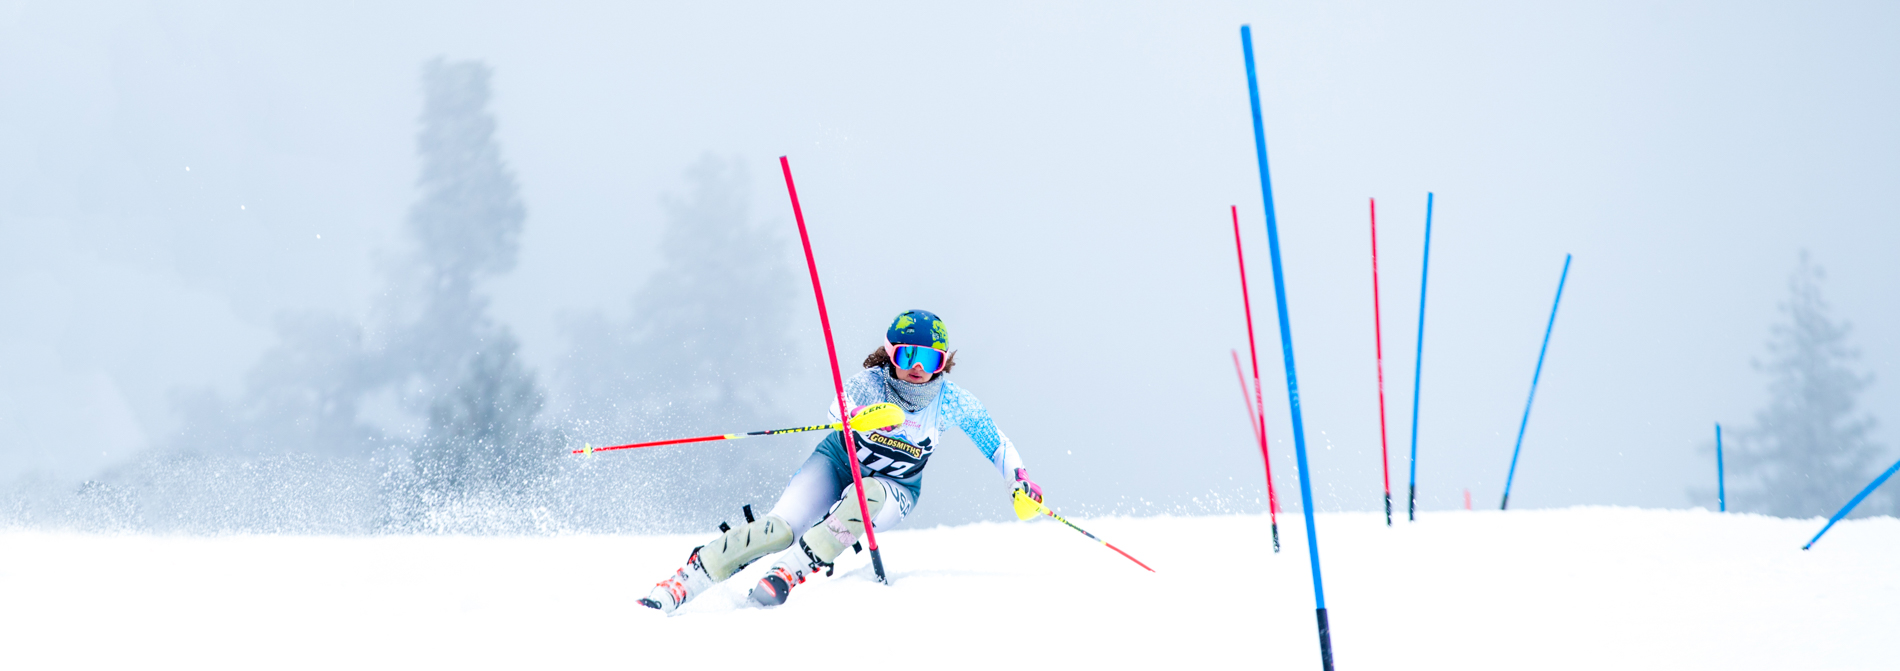 racer skiing in a race